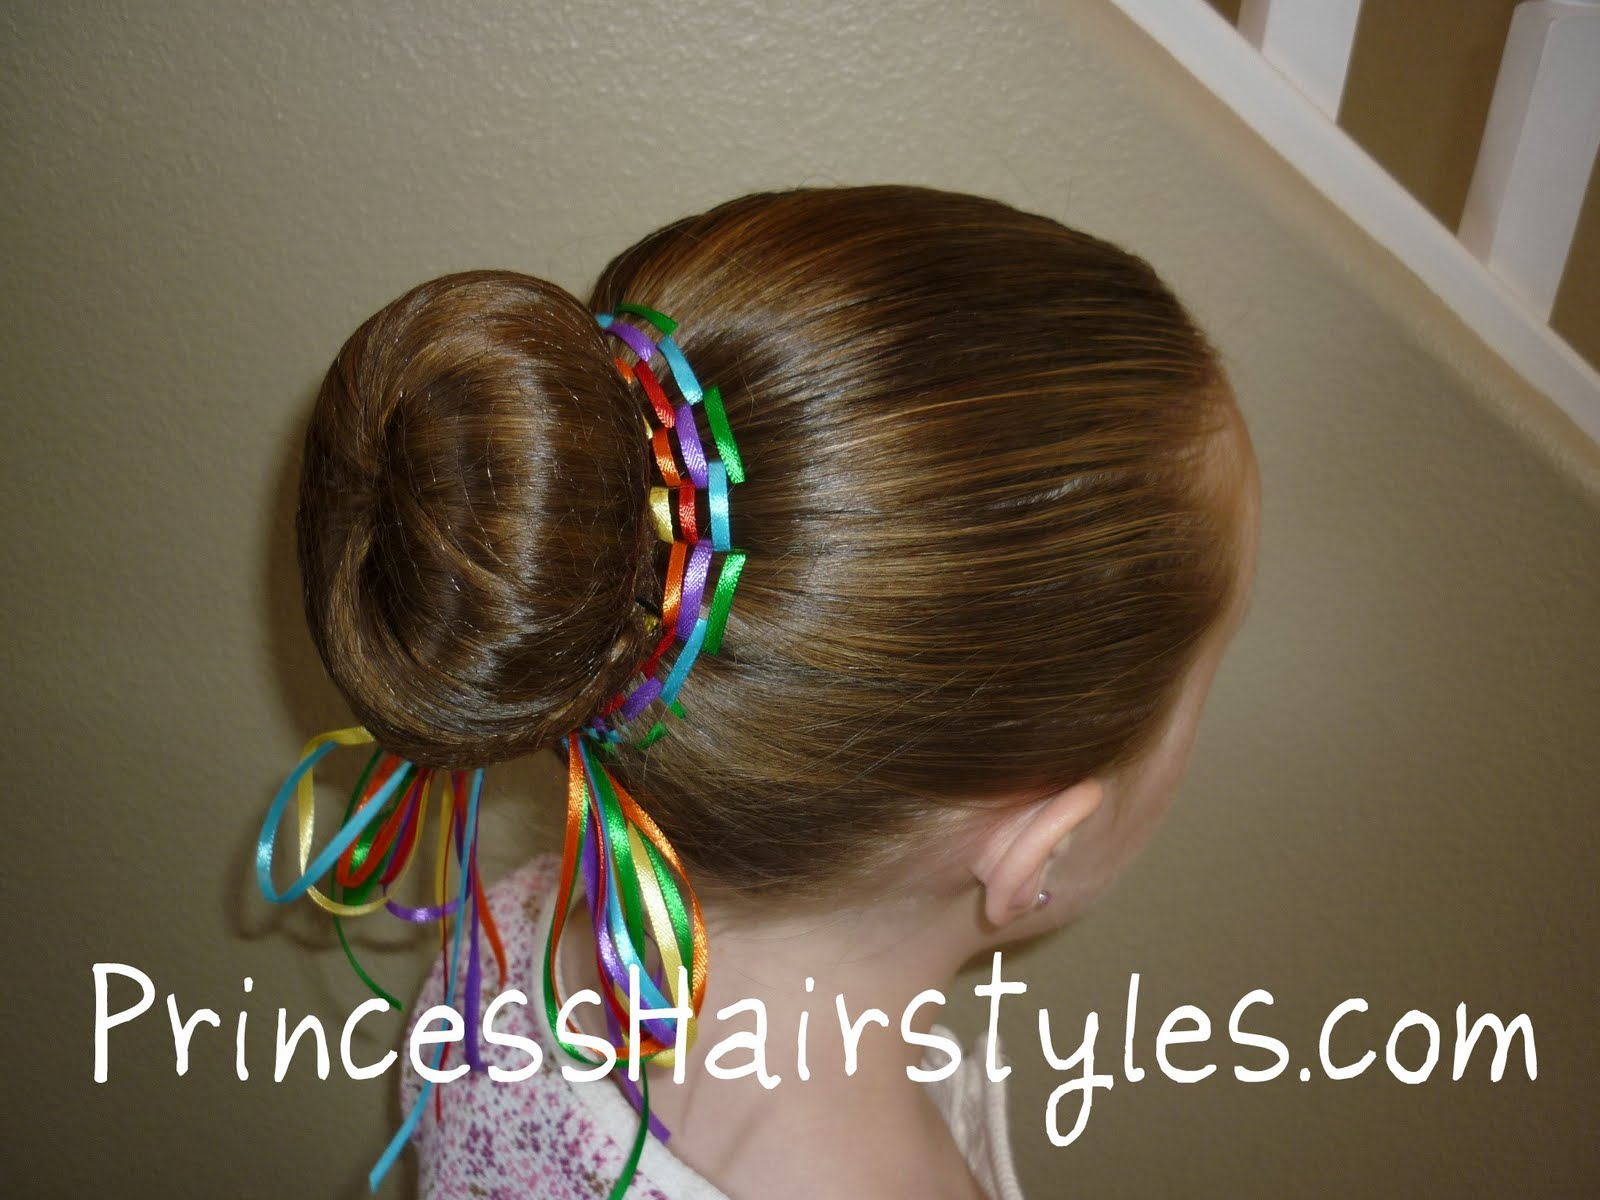 Hair Styles For A Dance: Hairstyle Ideas For Dance Competitions